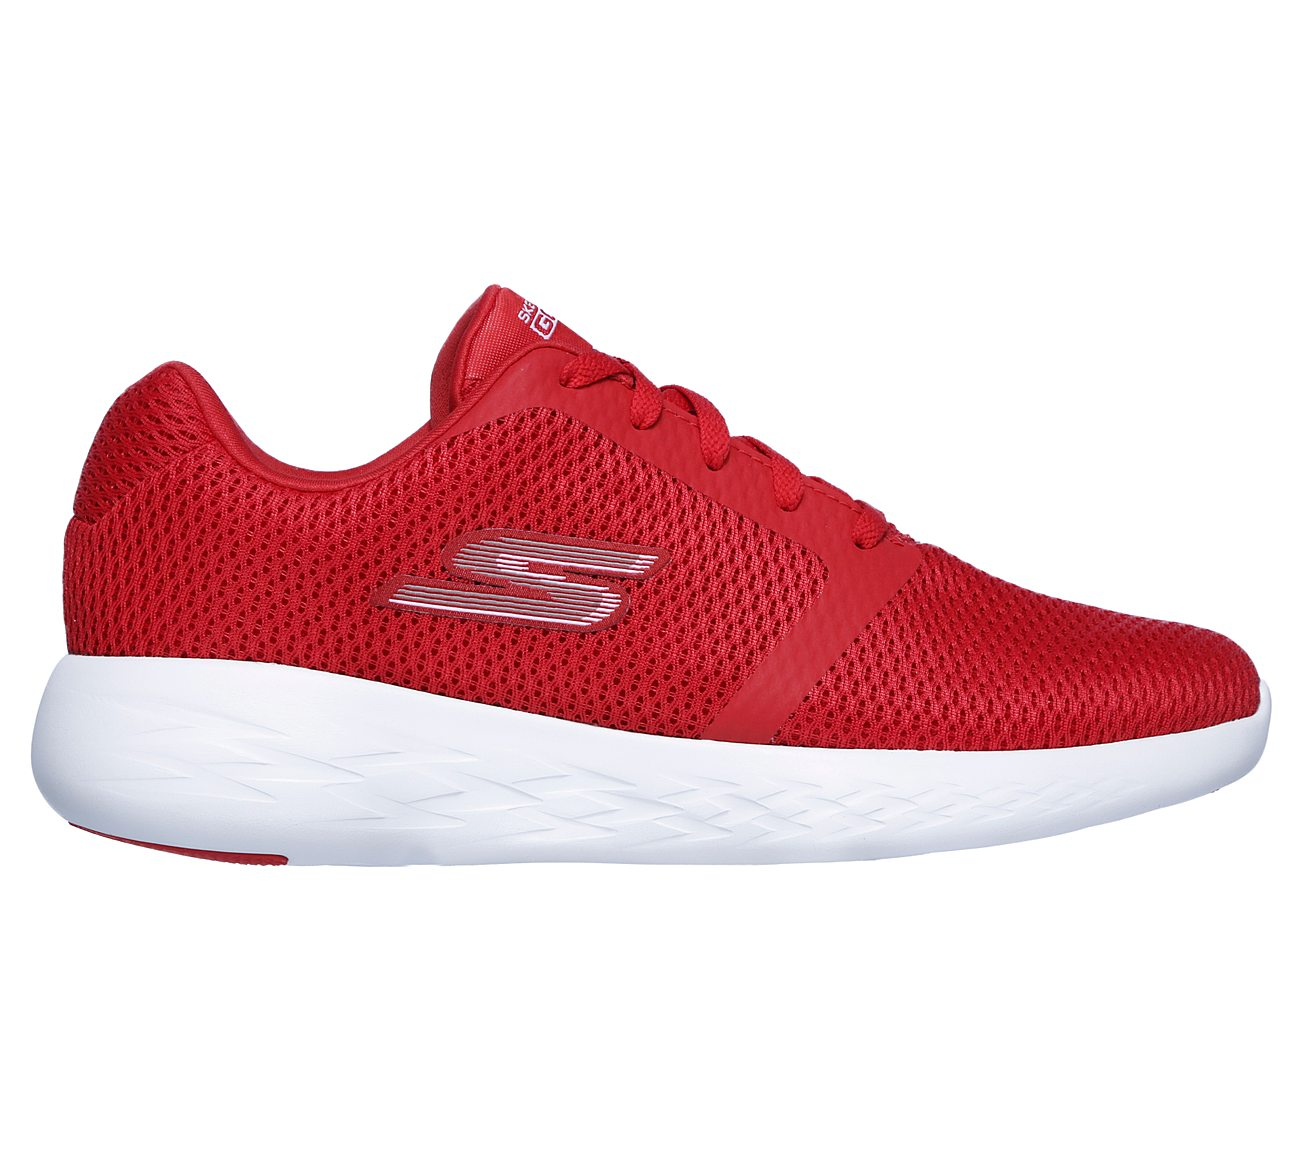 Buy SKECHERS Skechers GOrun 600 - Refine Skechers Performance Shoes ... fb65ae3151